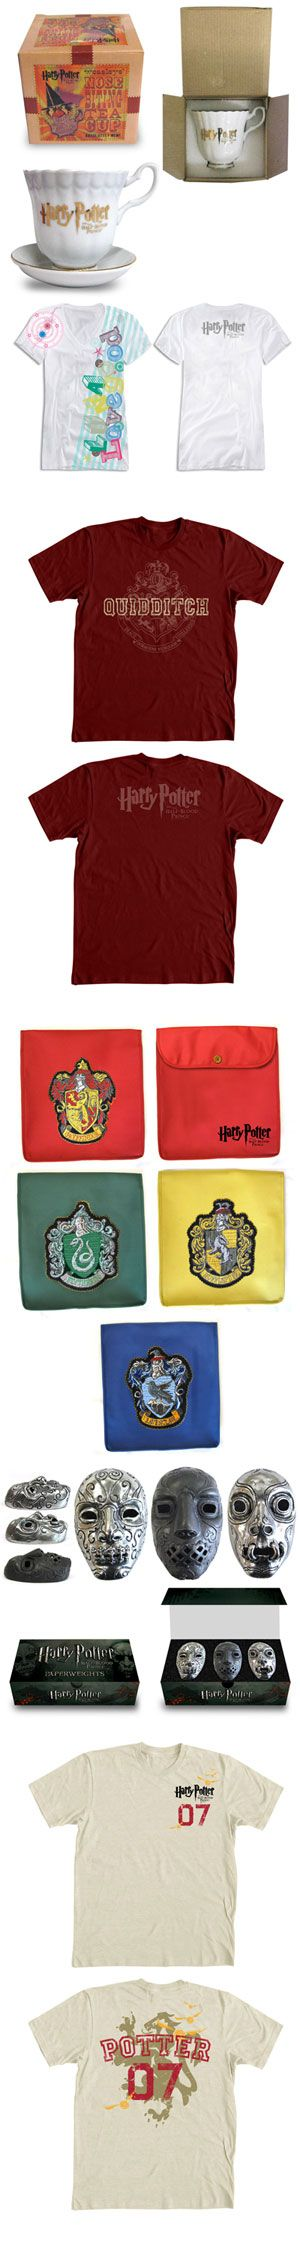 Harry Potter and the Half Blood Prince contest items (1).jpg